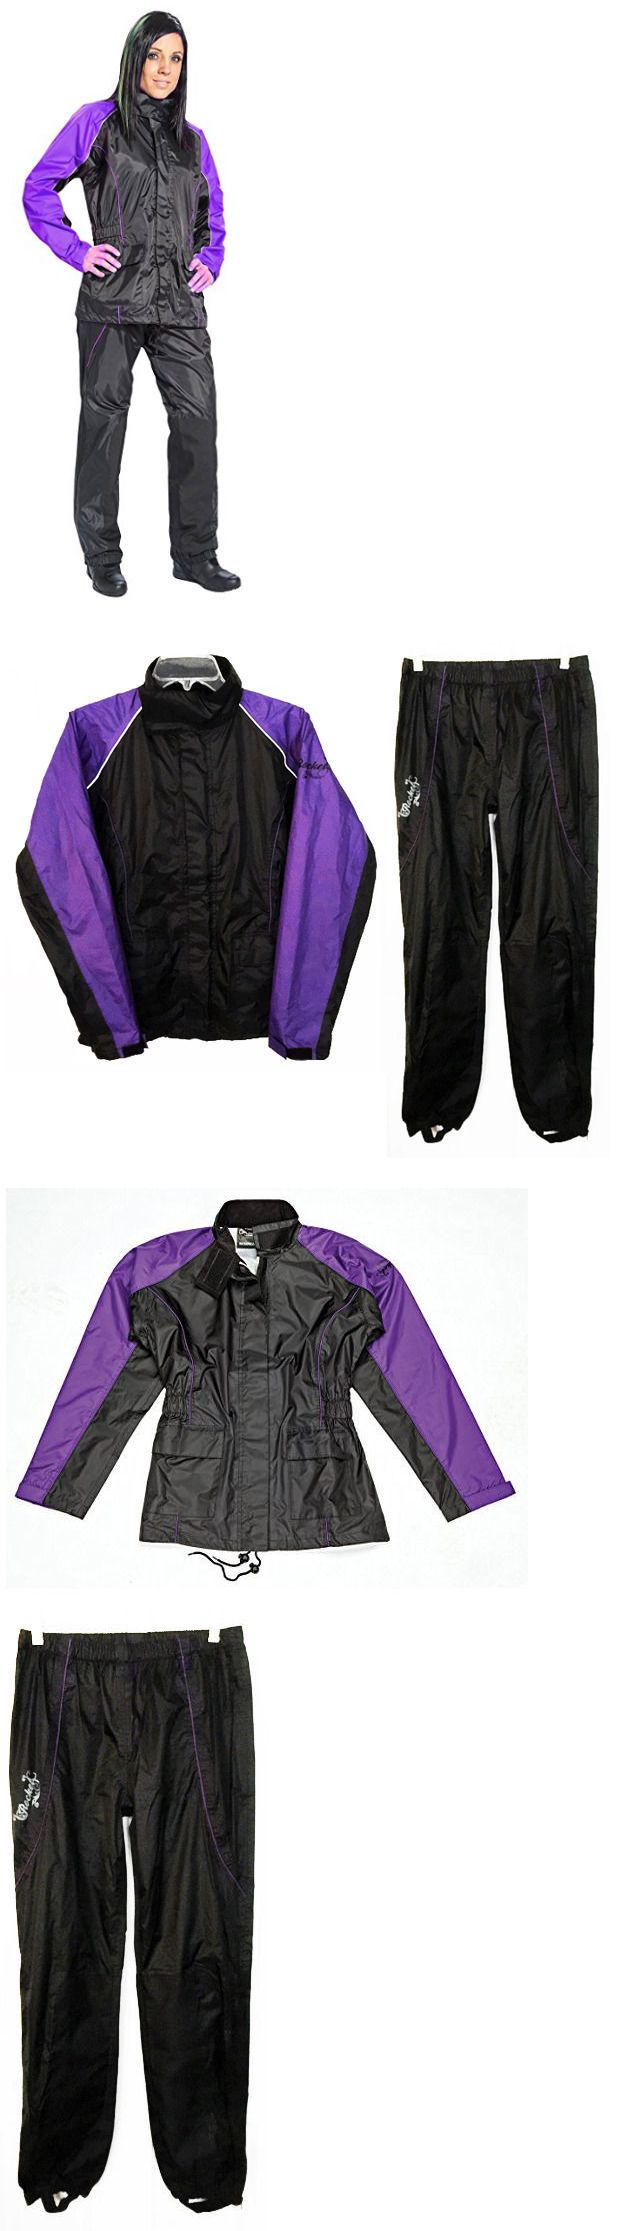 Jacket and Pant Sets 177872: Joe Rocket Rs-2 Womens 2-Piece Motorcycle Rain Suit Black/Purple Sz Small BUY IT NOW ONLY: $45.52